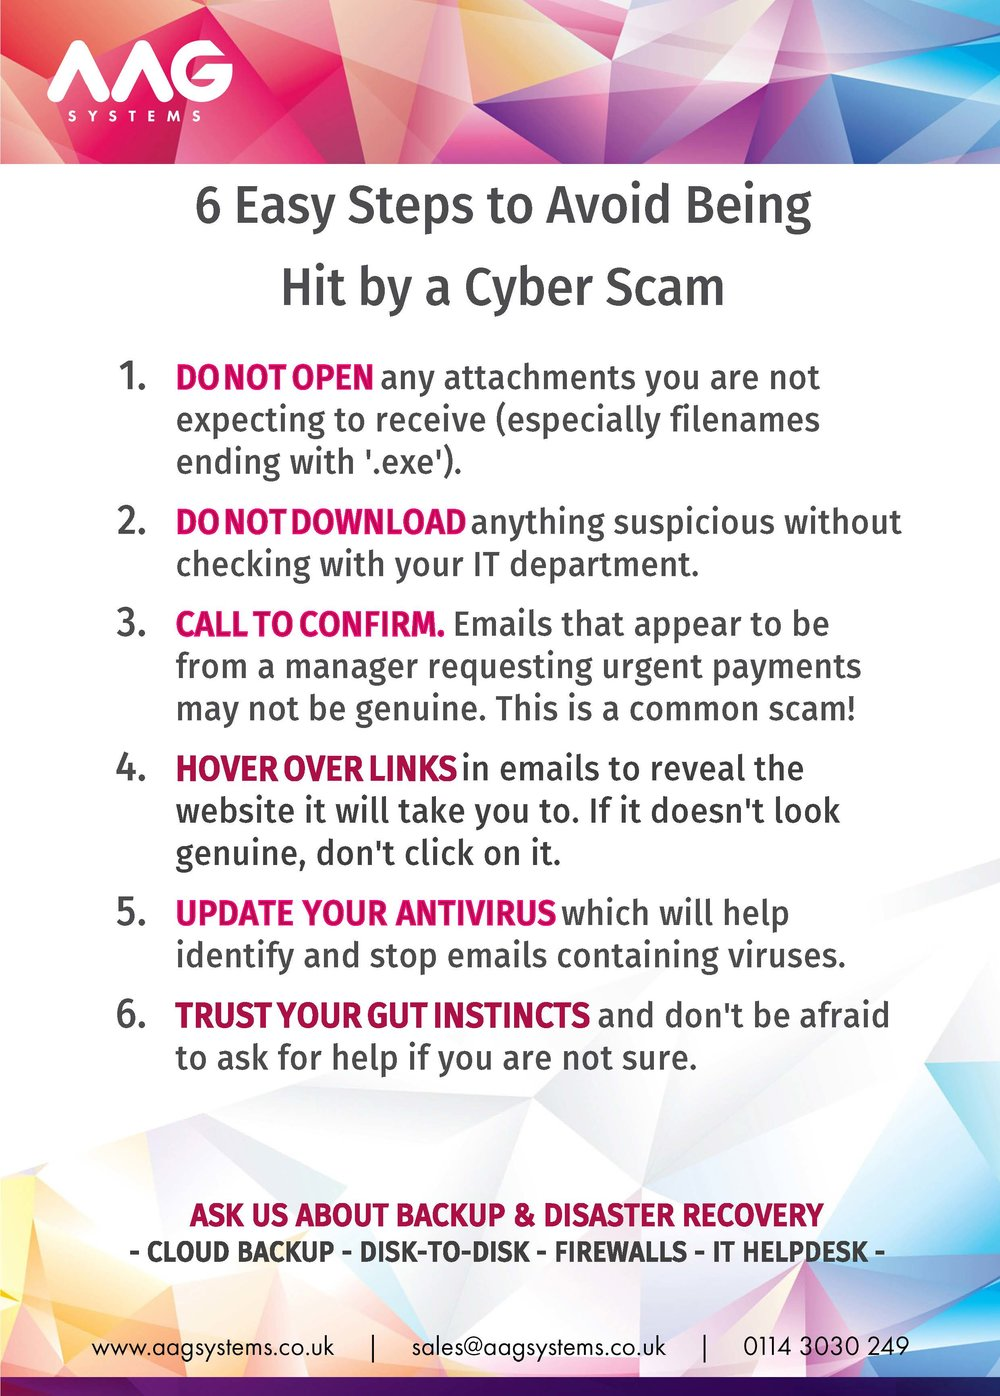 AAG's 'How to avoid being hit by a cyber scam' poster Jan 2017.jpg